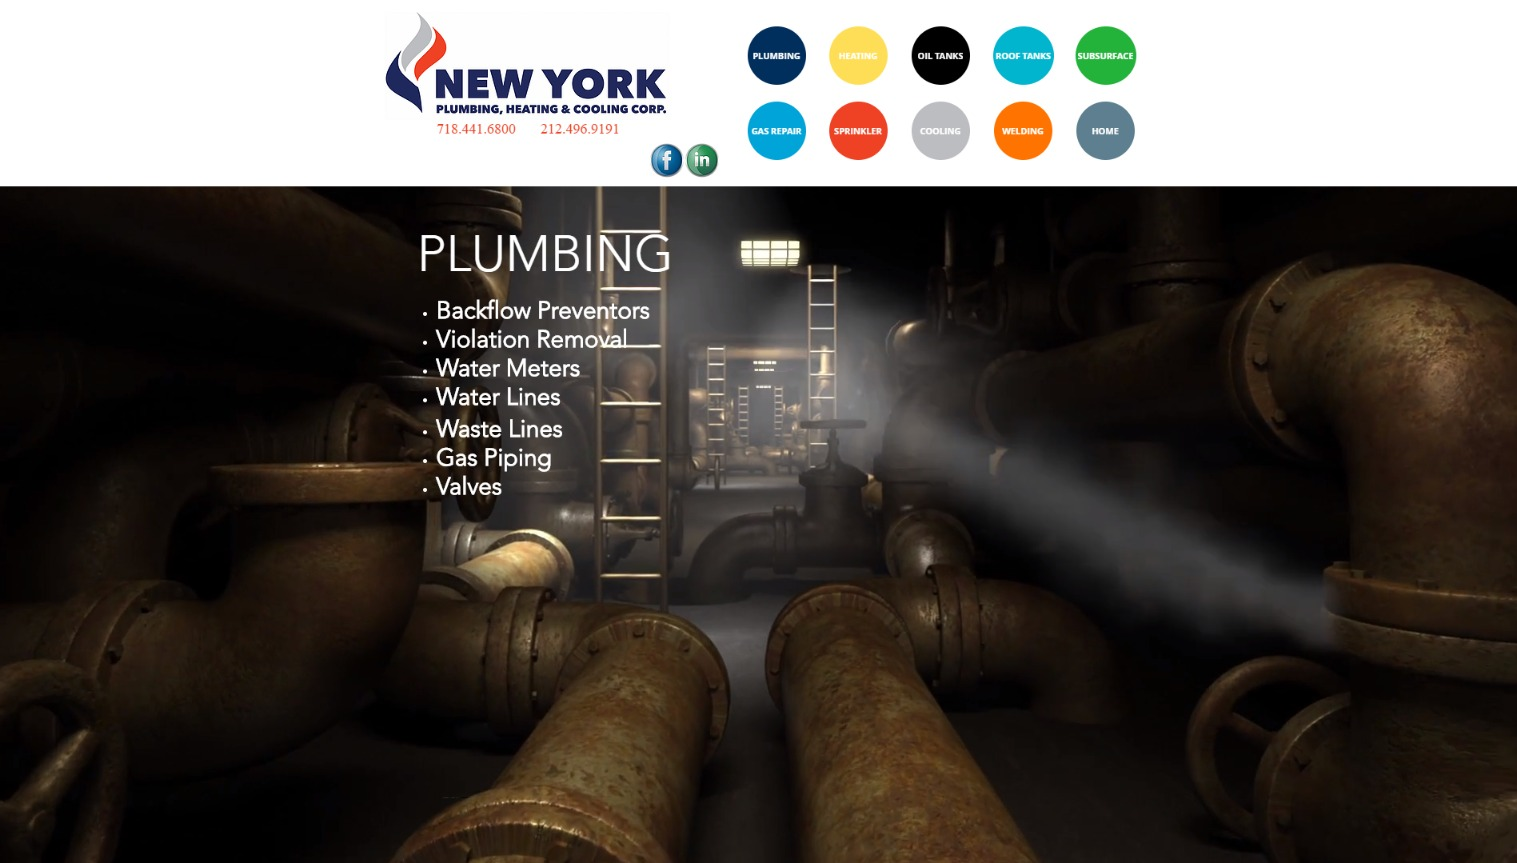 New York Plumbing Heating and Cooling